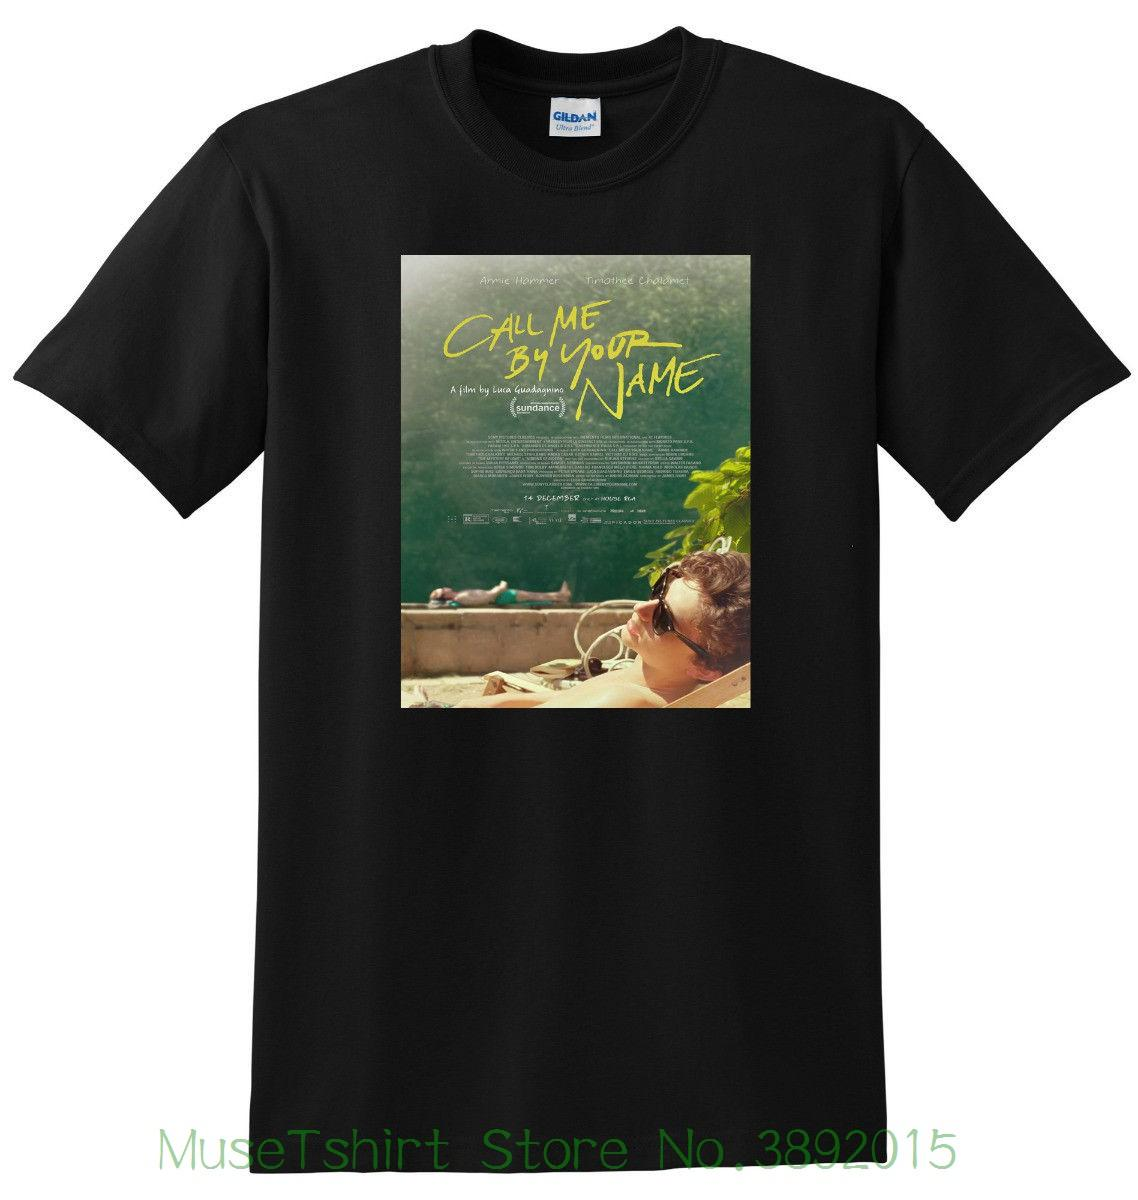 New Call Me By Your Name T Shirt Movie Poster Tee Small Medium